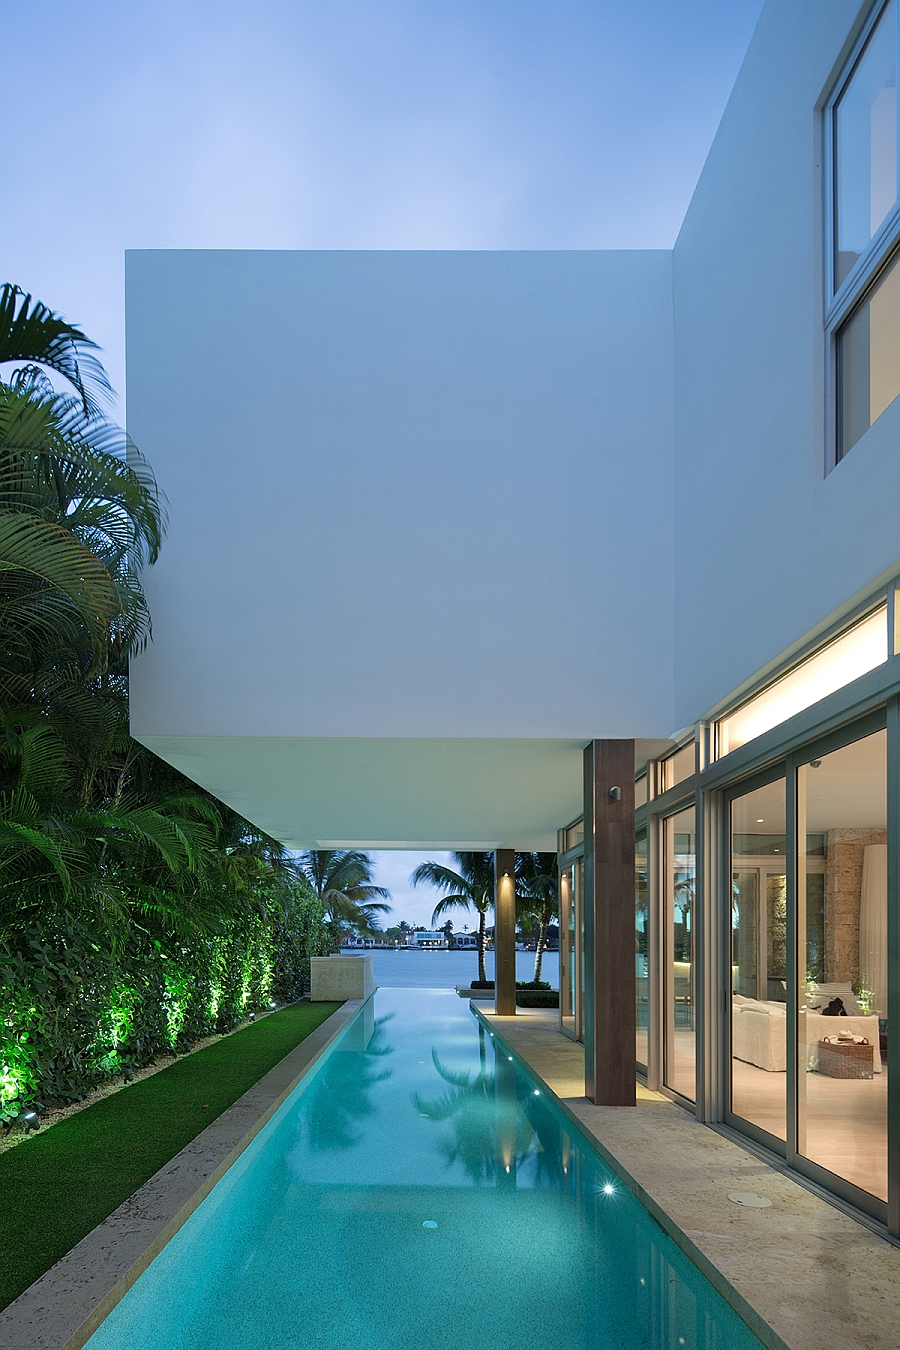 Natural greenery around the pool beautifully illuminated